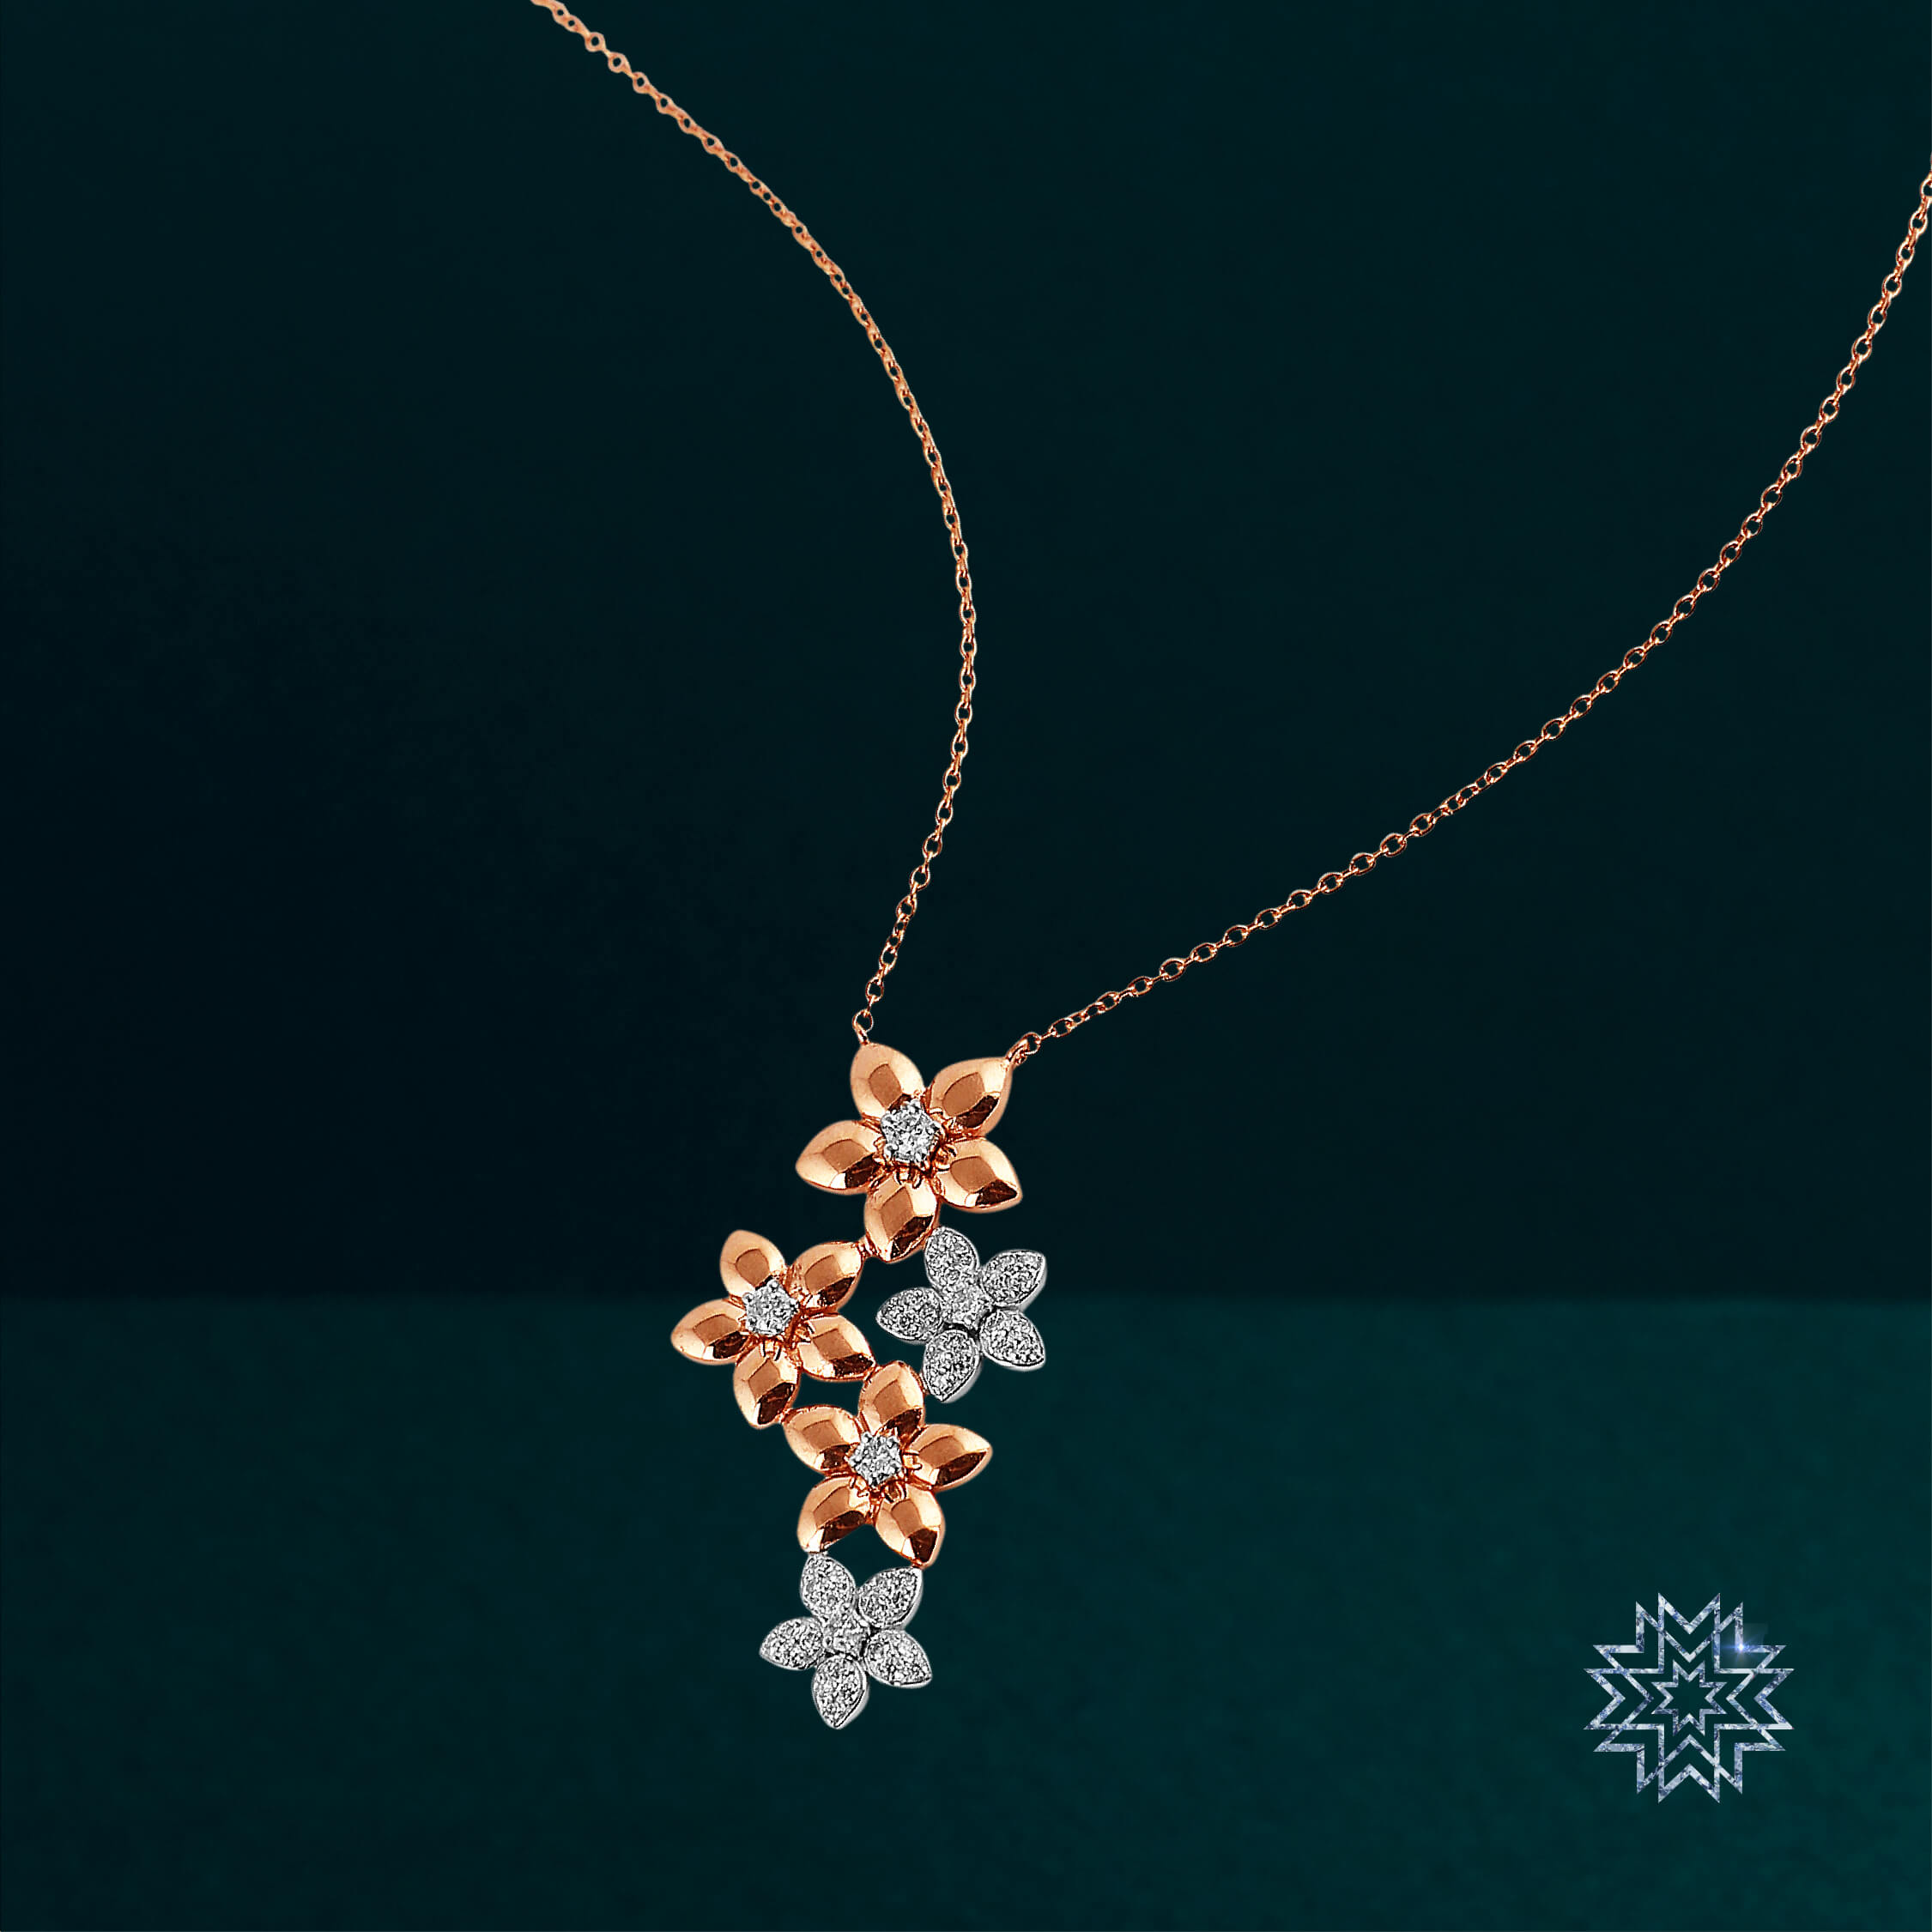 Brighten up your soul with this starlit necklace.